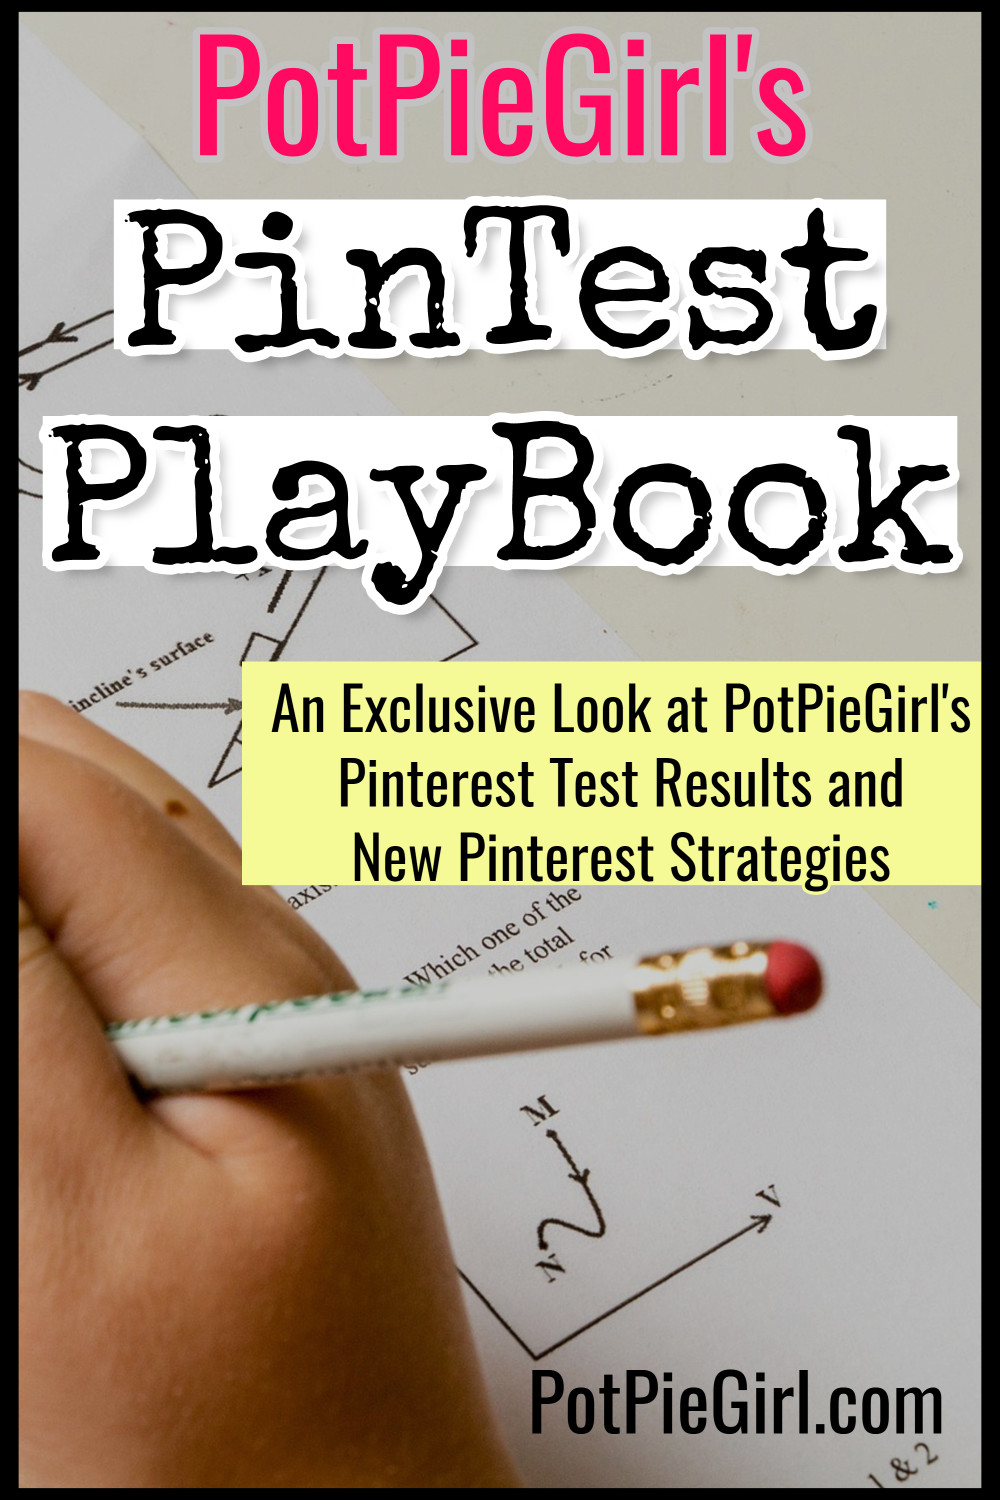 Pinterest Strategy For Bloggers SERIOUS About Their Pinterest Traffic - shows how to fix lost traffic from Pinterest, how to keep Viral Pins bringing traffic and how to rank higher in Pinterest search results